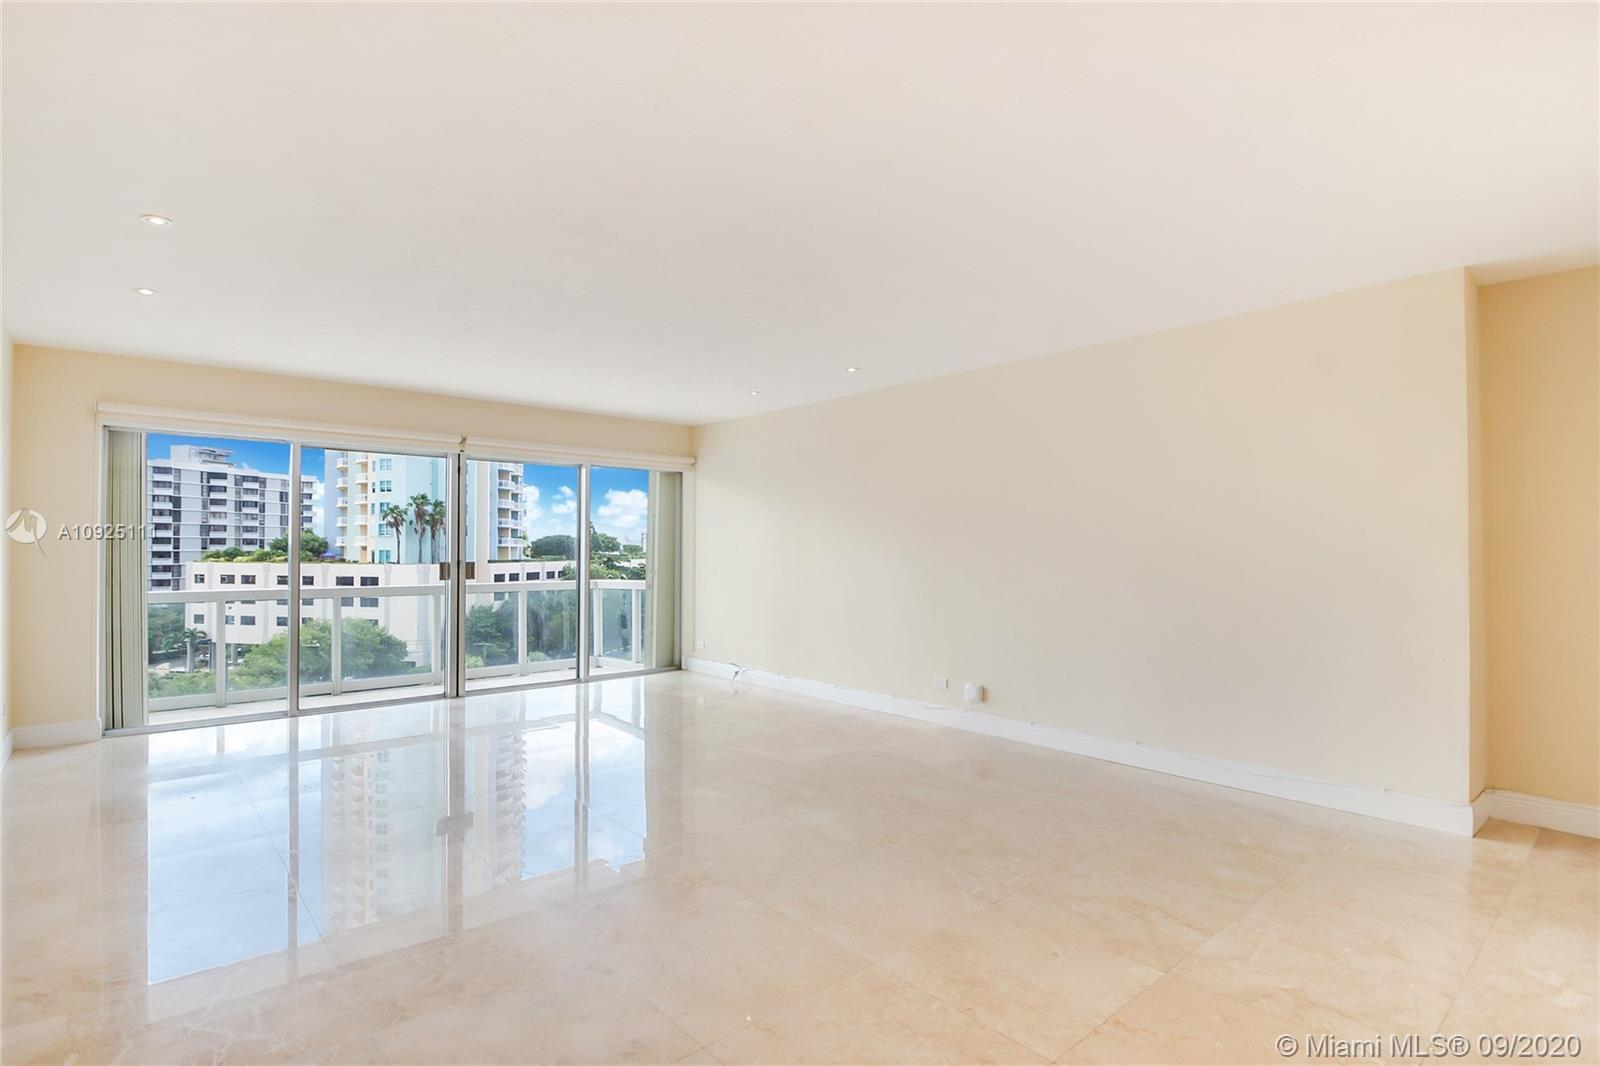 Best deal in the building & rarely on the Market. Spacious 1,344 sf Condo filled w/ natural light of